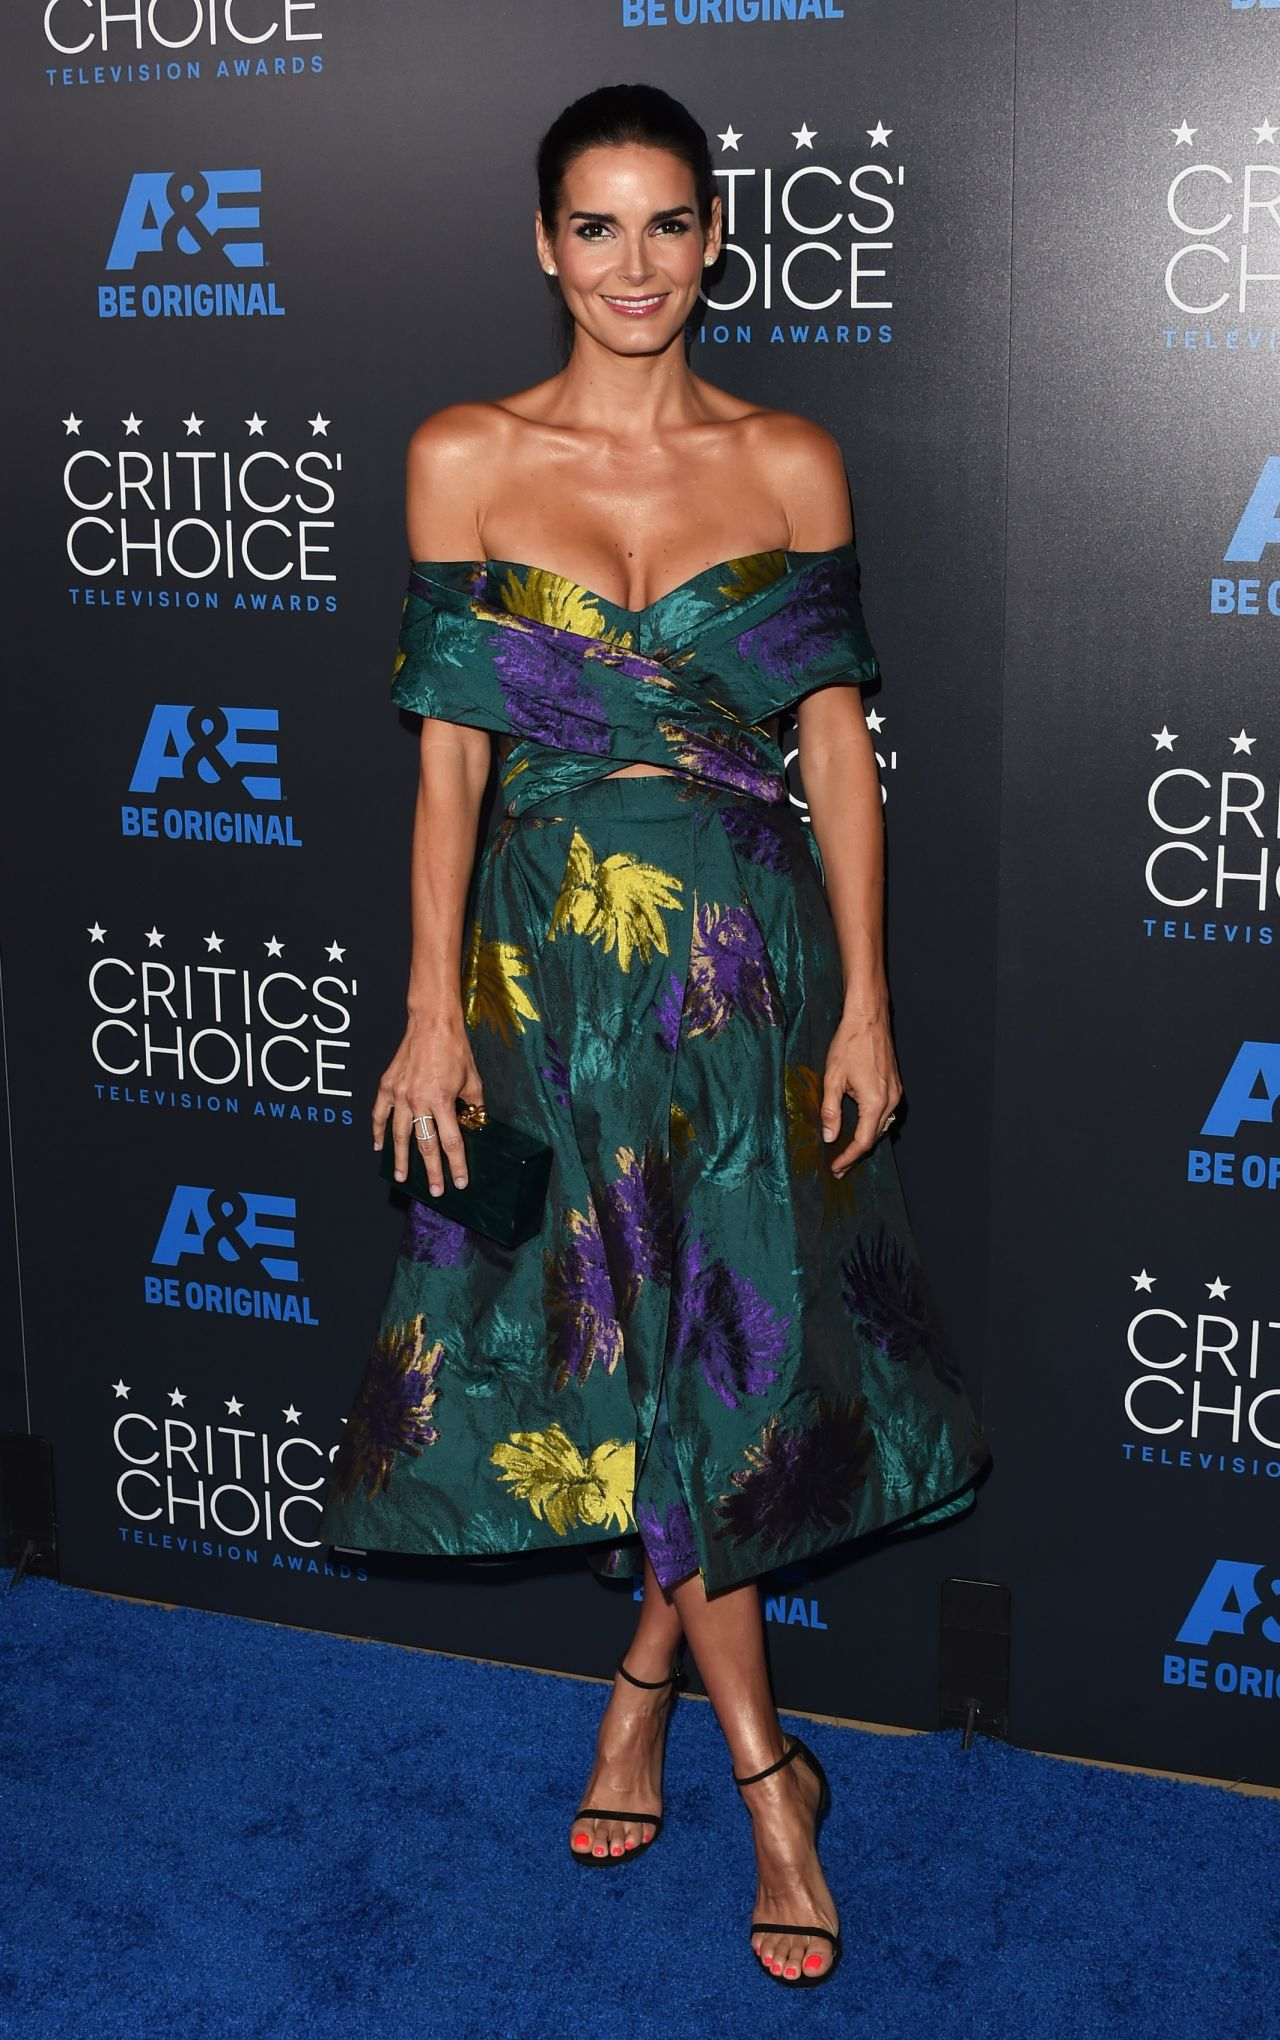 angie-harmon-in-christian-siriano-at-the-2015-critics-choice-television-awards